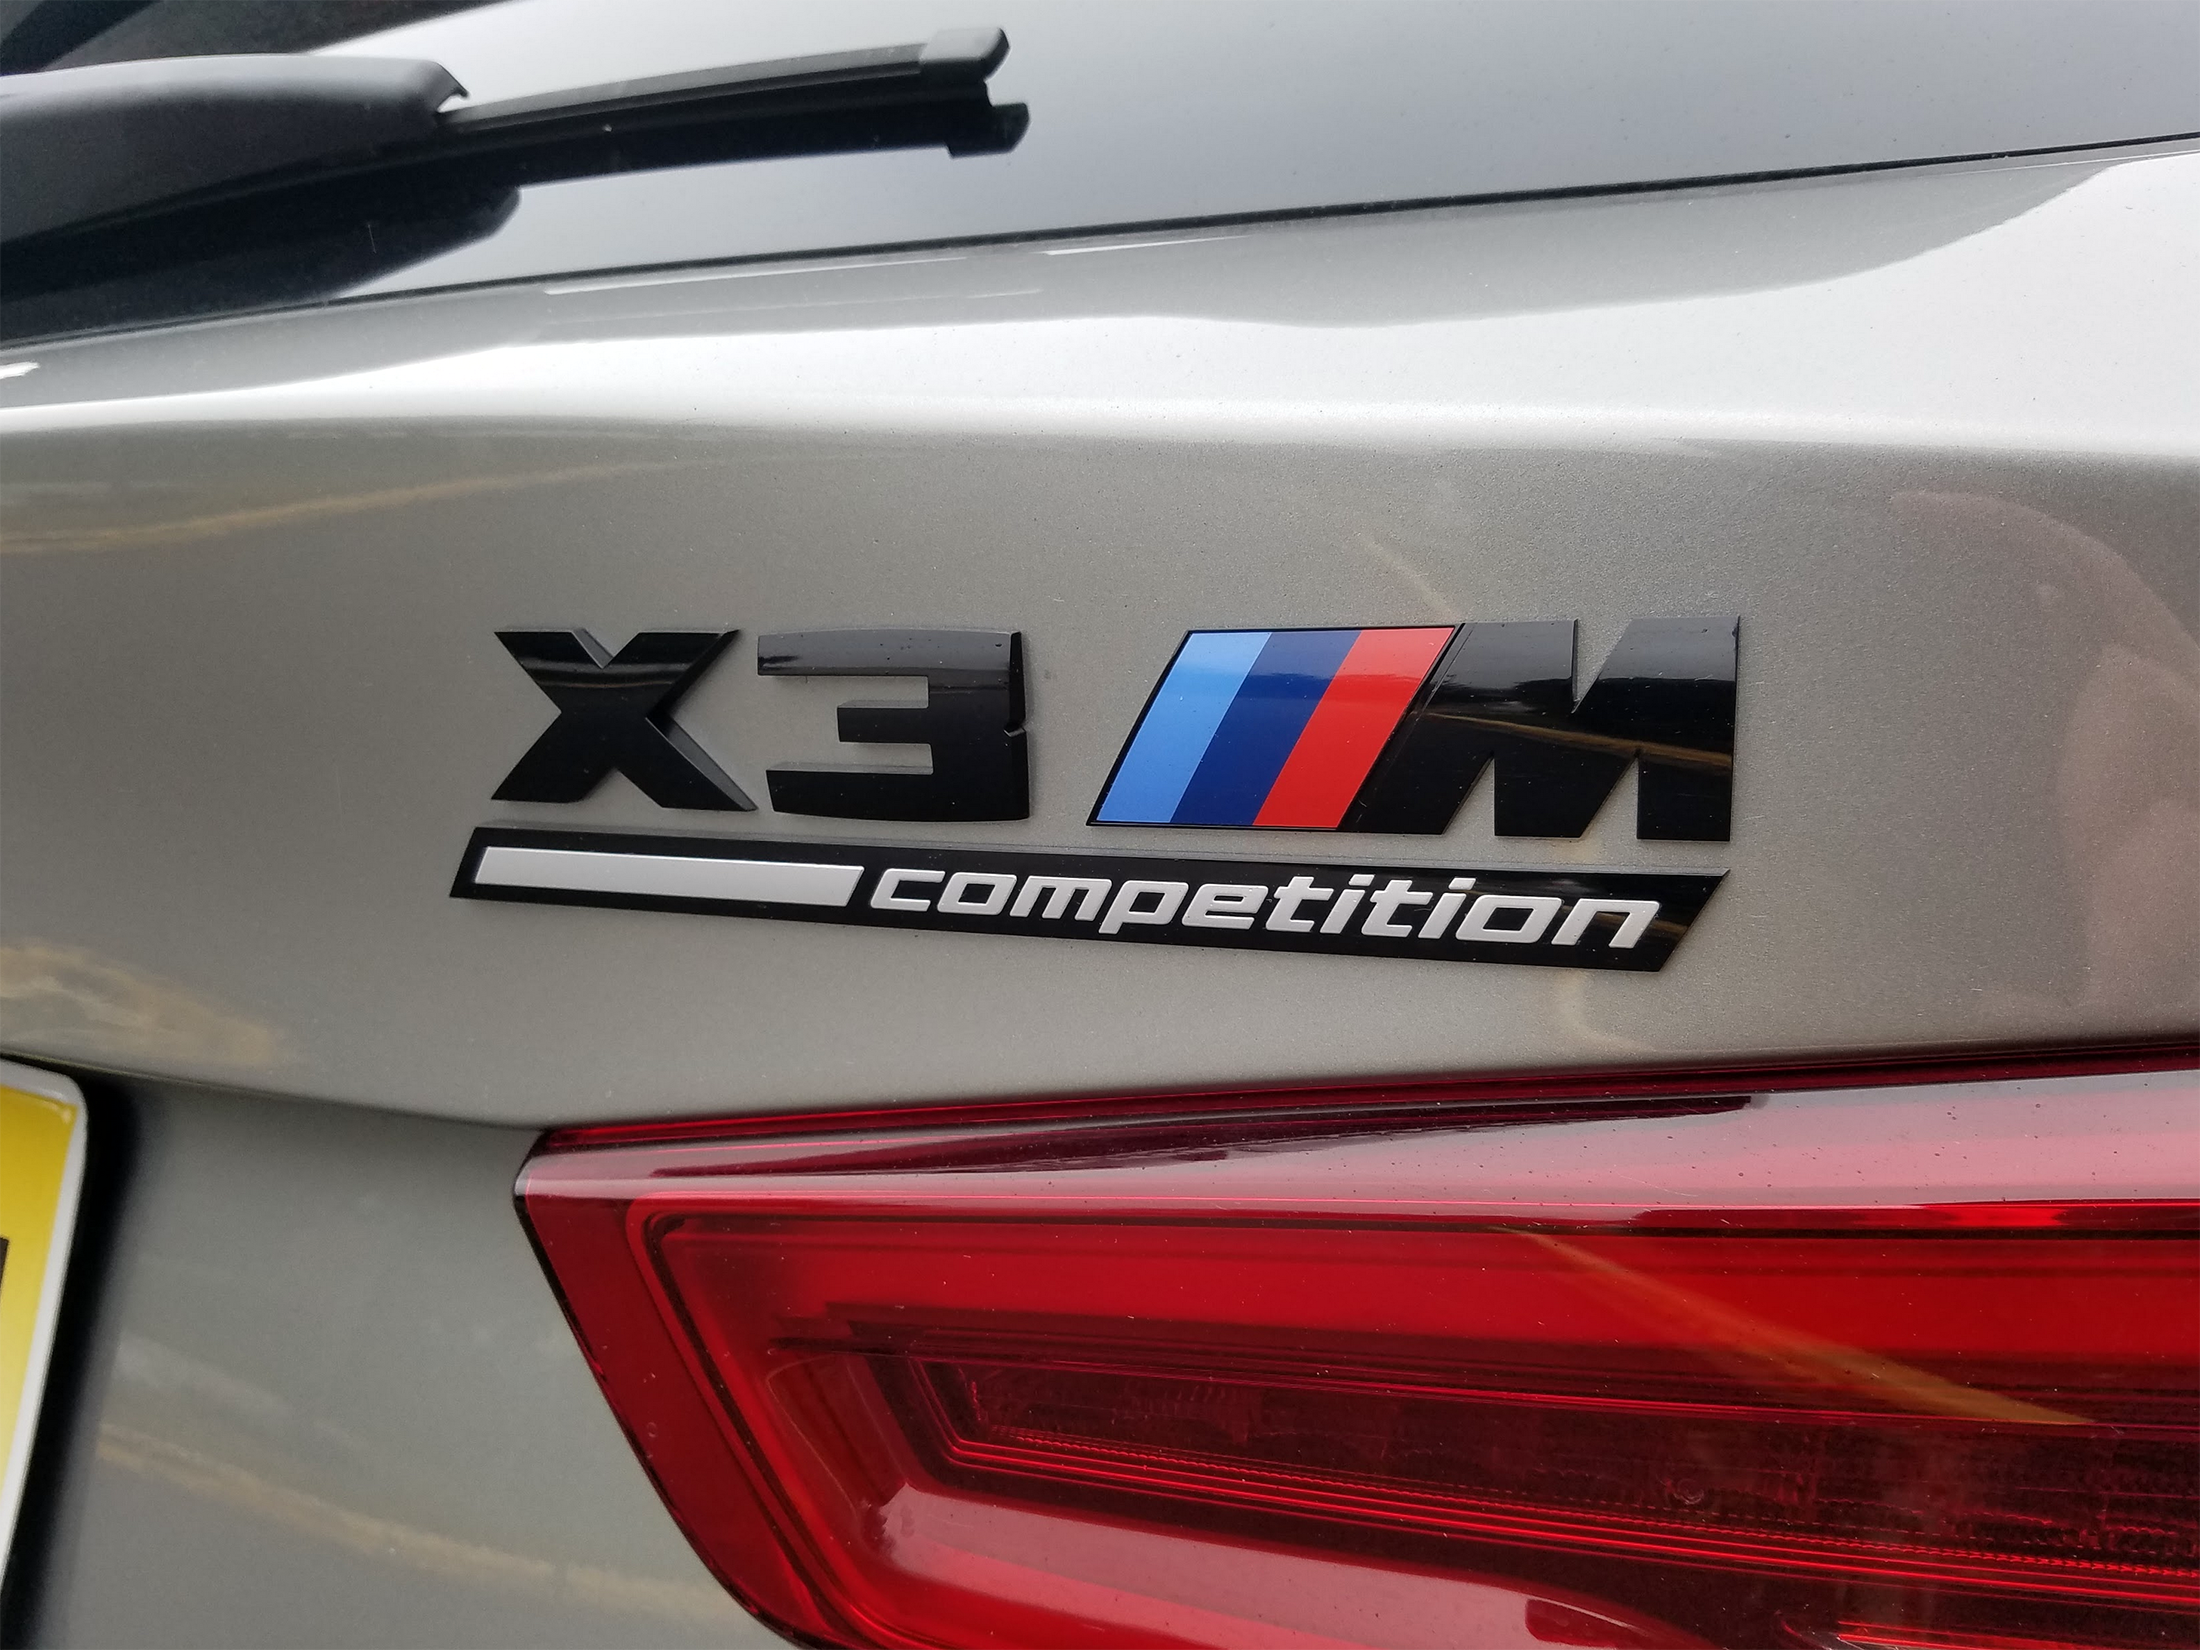 BMW X3 Xompetition Badge